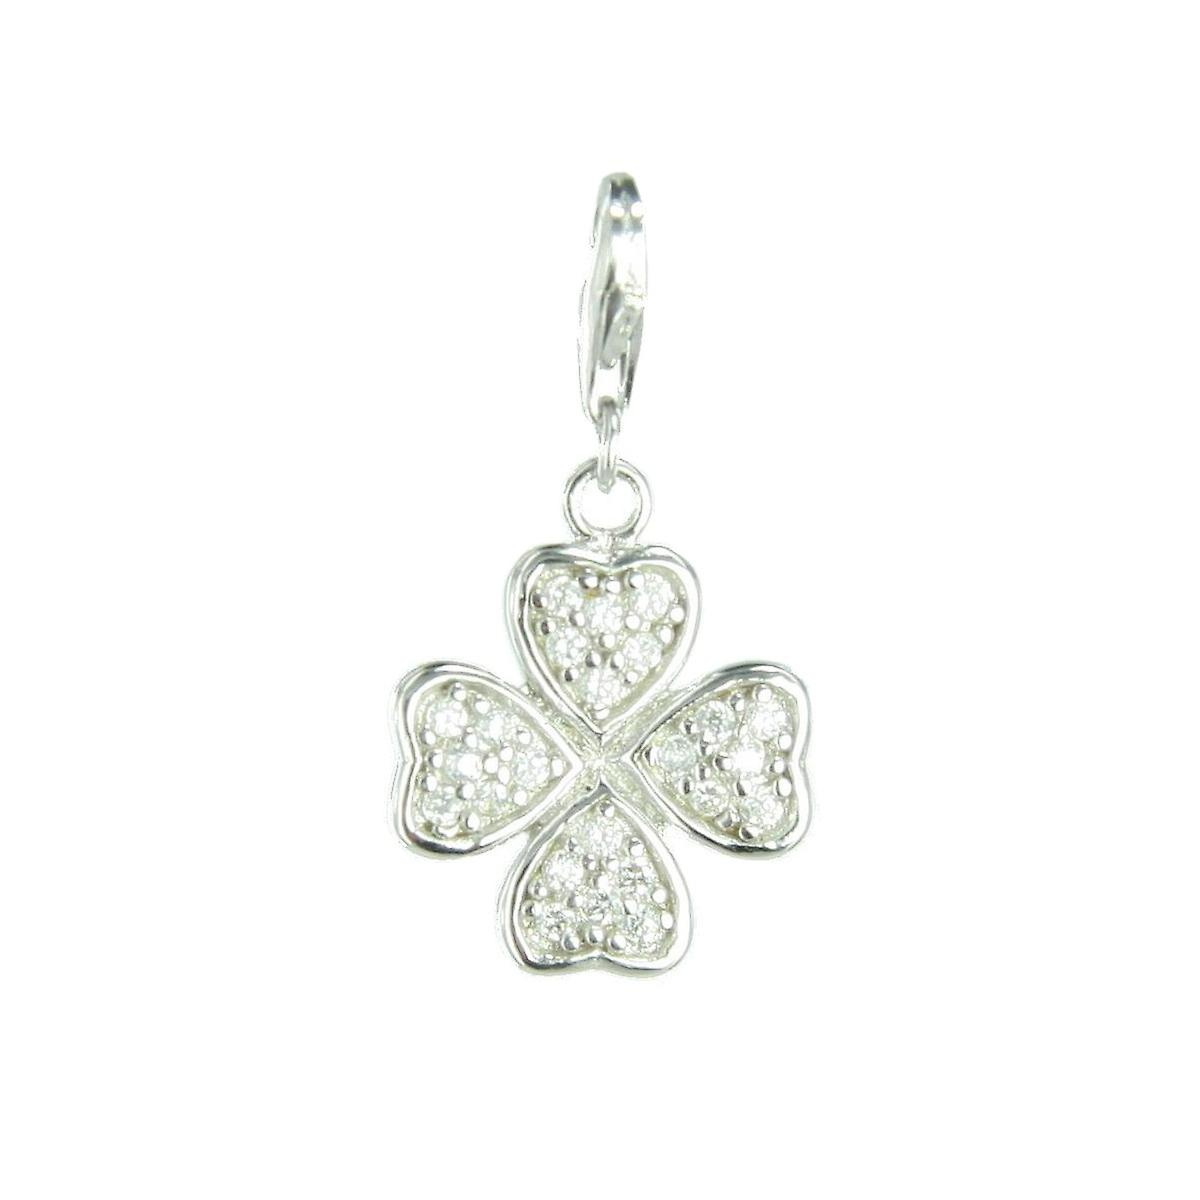 s.Oliver jewel ladies pendant charm silver four-leaf clover SOCHA/118 398657